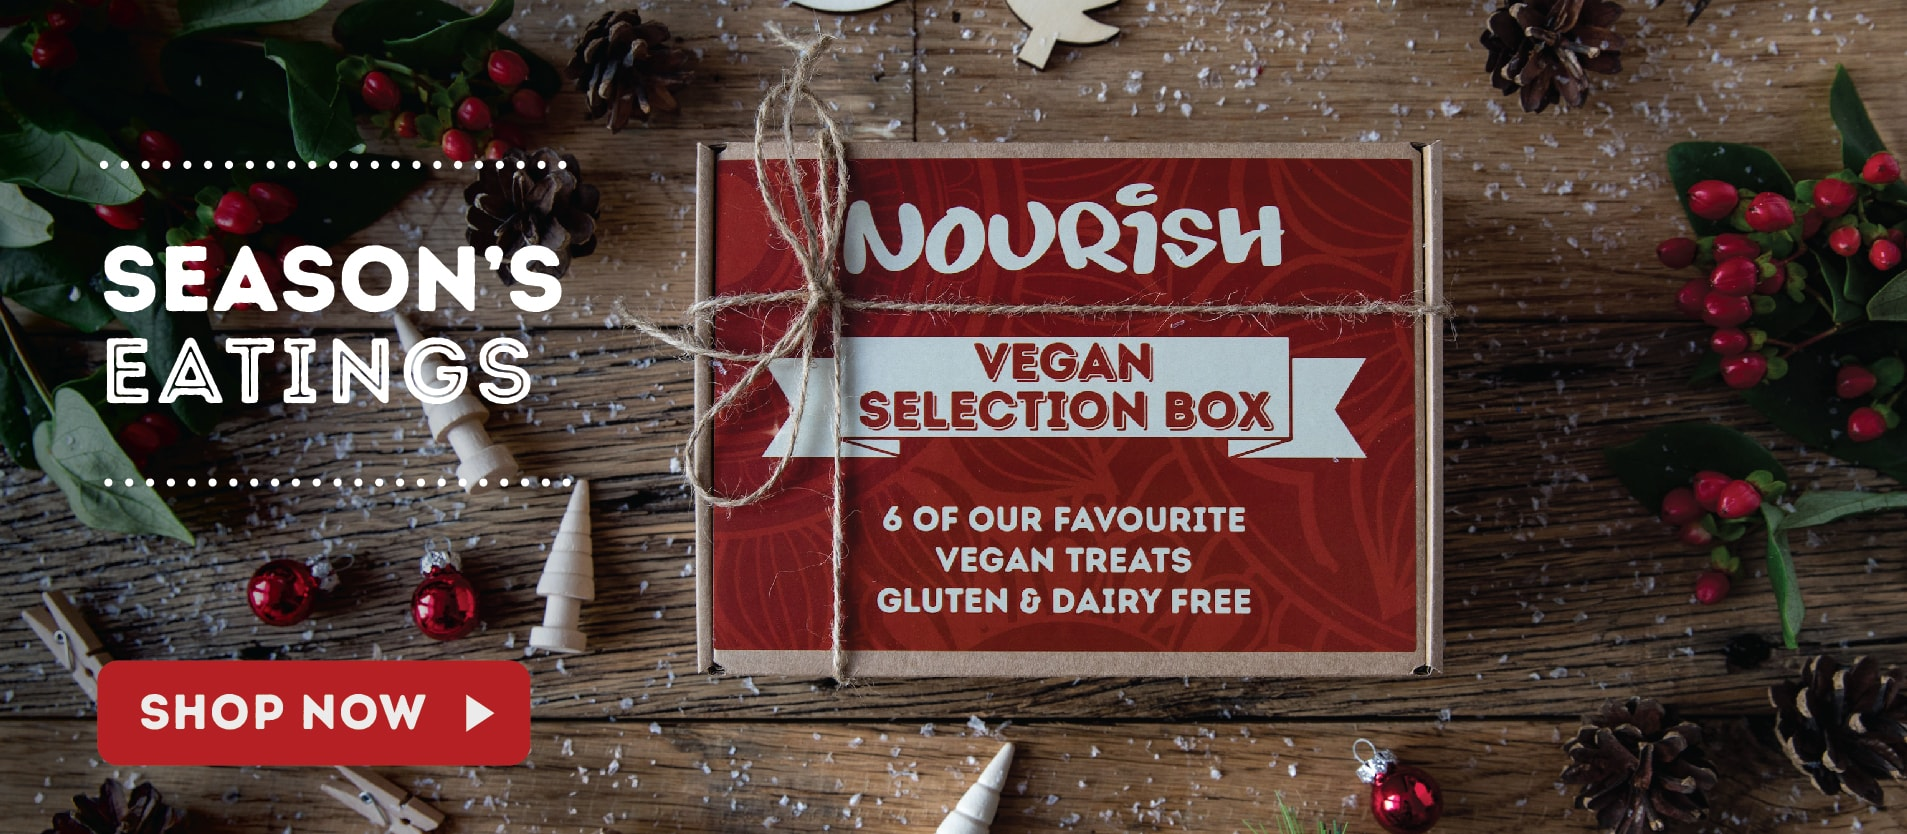 Vegan Selection Box